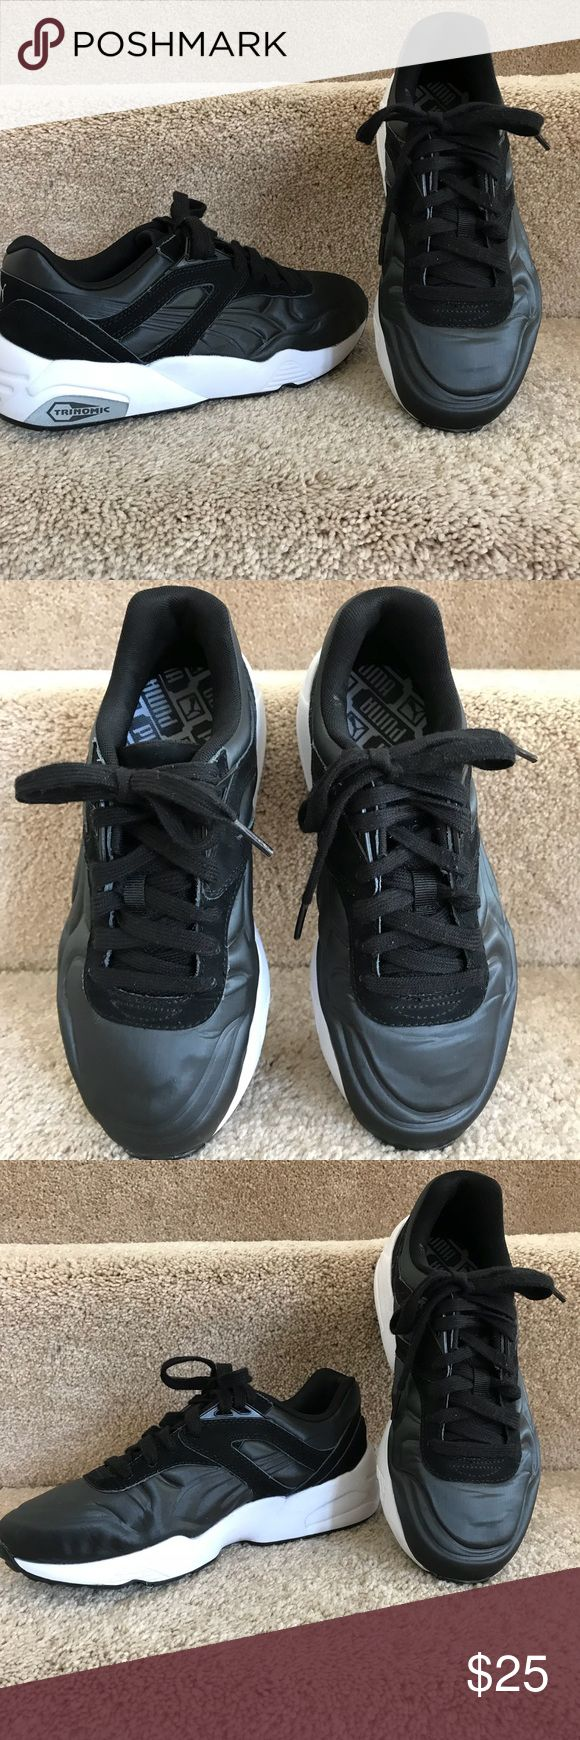 PUMA Size 6.5 Ladies Sneakers Worn a few times but still like new. Comes from smoke/pet free home. I ship quickly! Puma Shoes Athletic Shoes